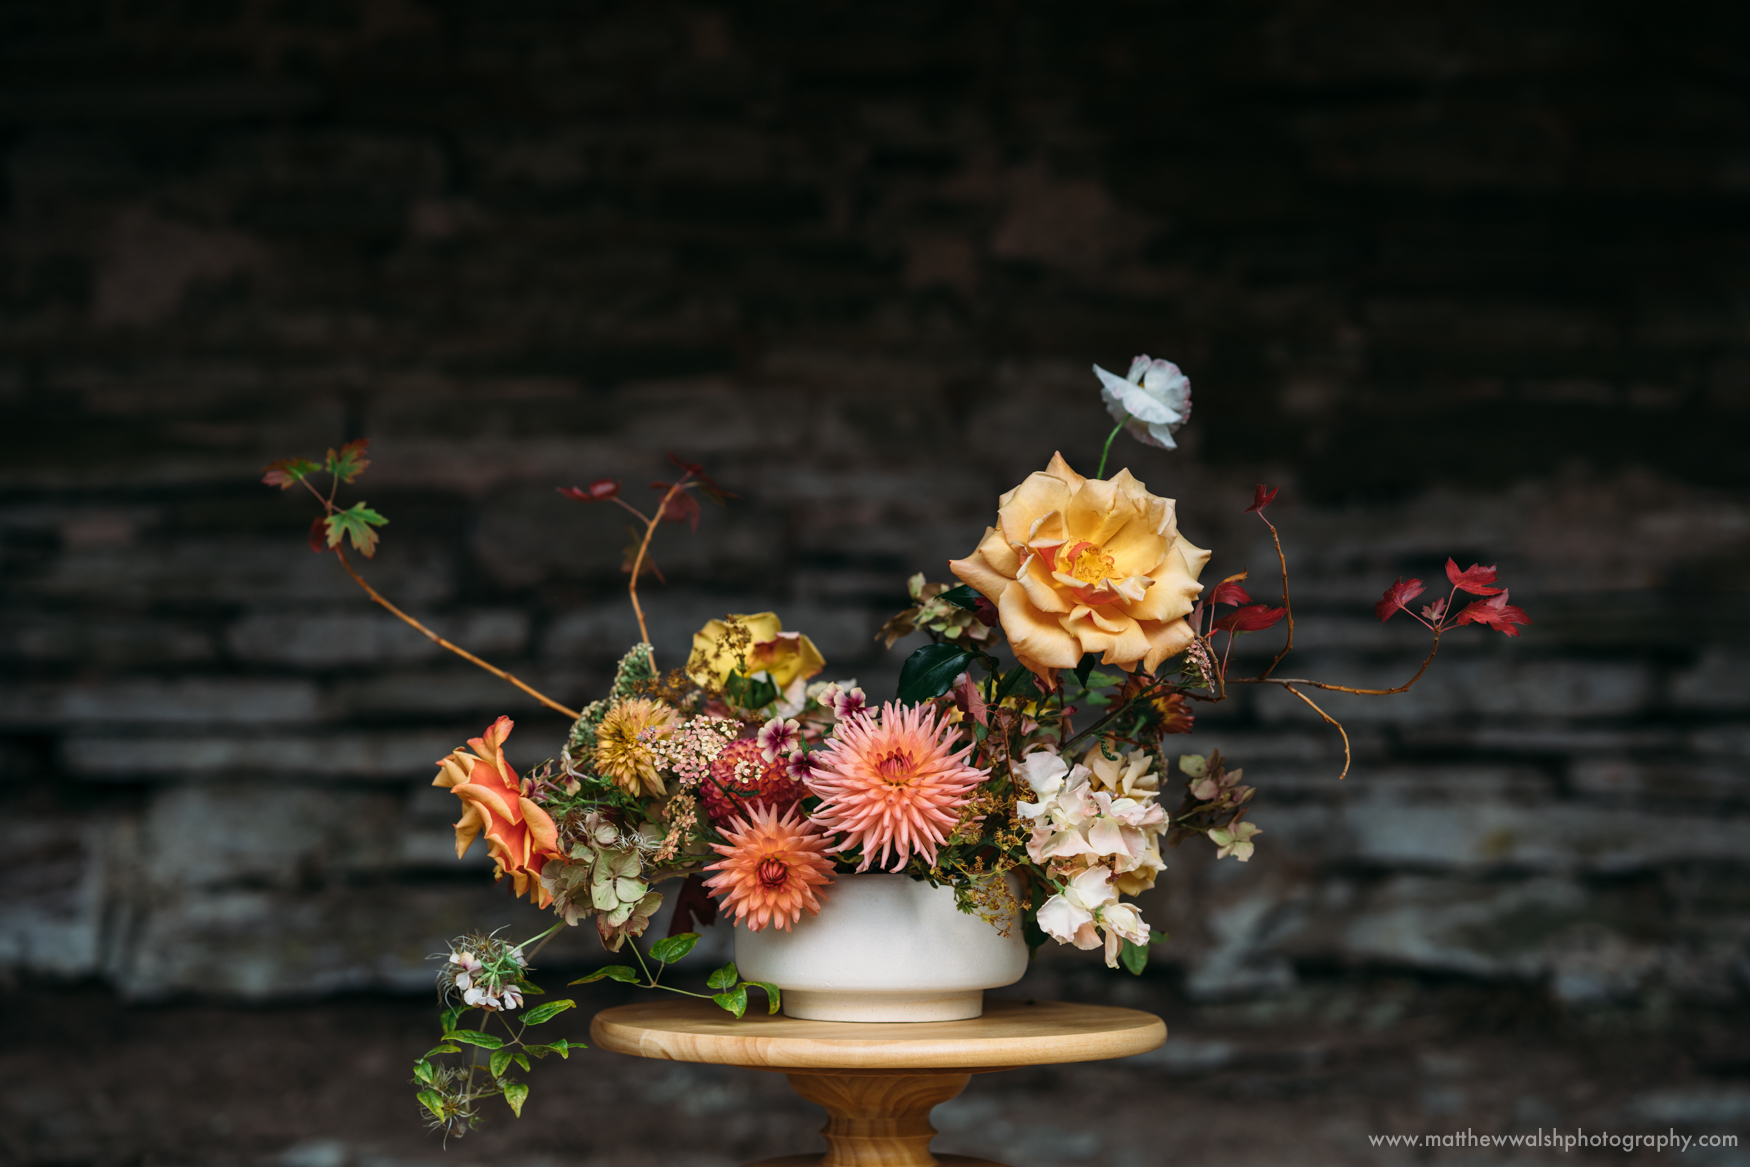 Moss and Stones final product, amazing colourful and elegant flowers